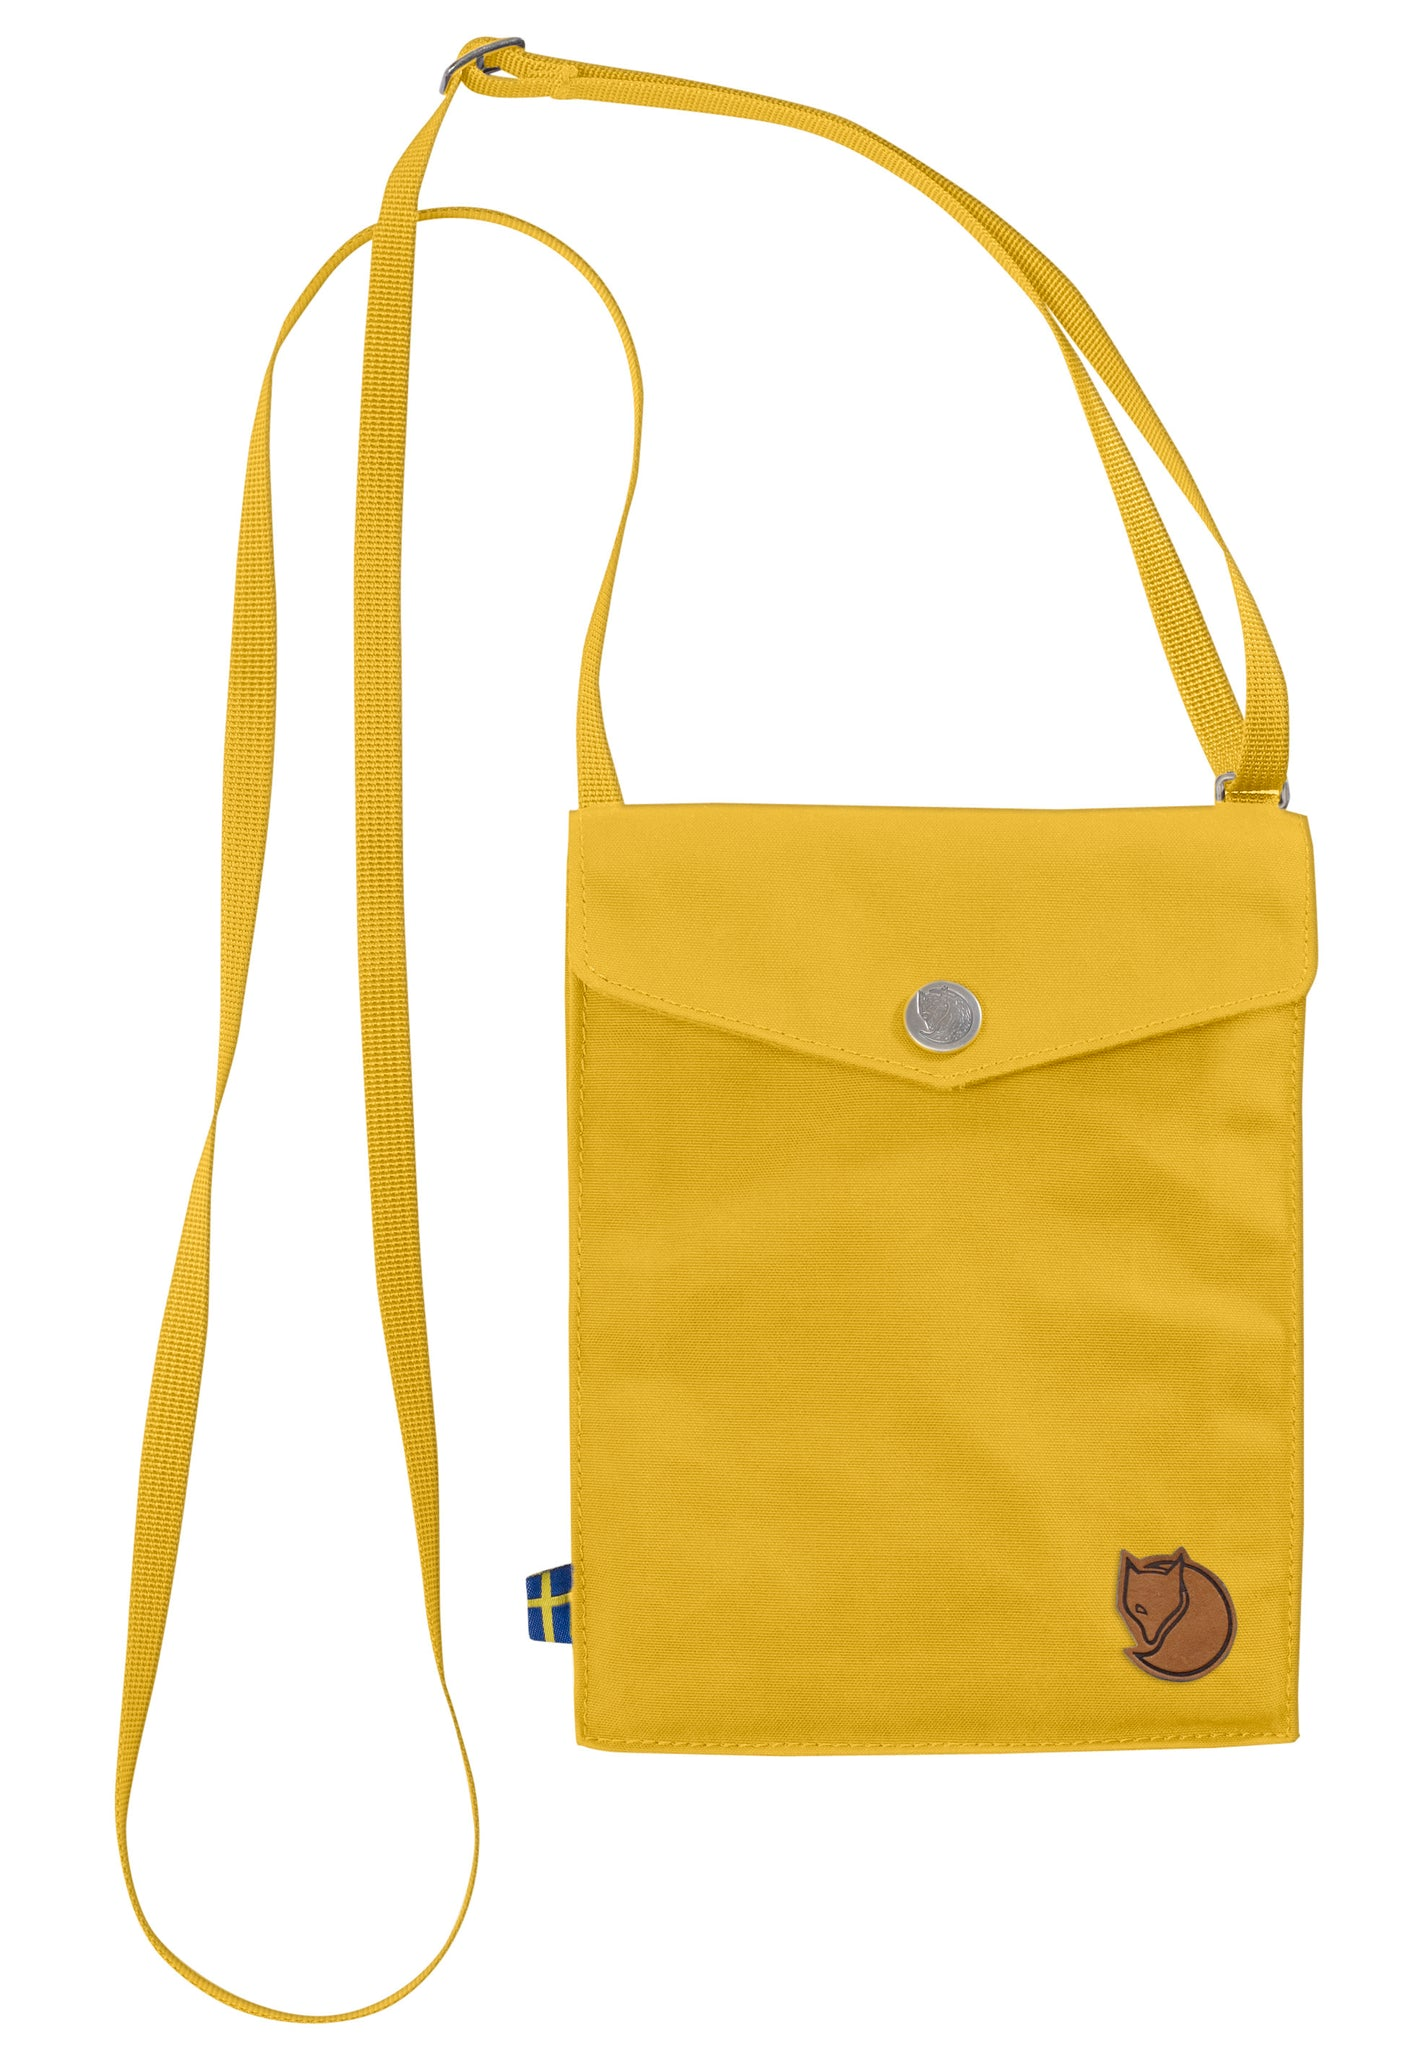 Fjallraven Pocket Shoulder Bag in Ochre – Welcome to Footprint27.com 68149494130bd